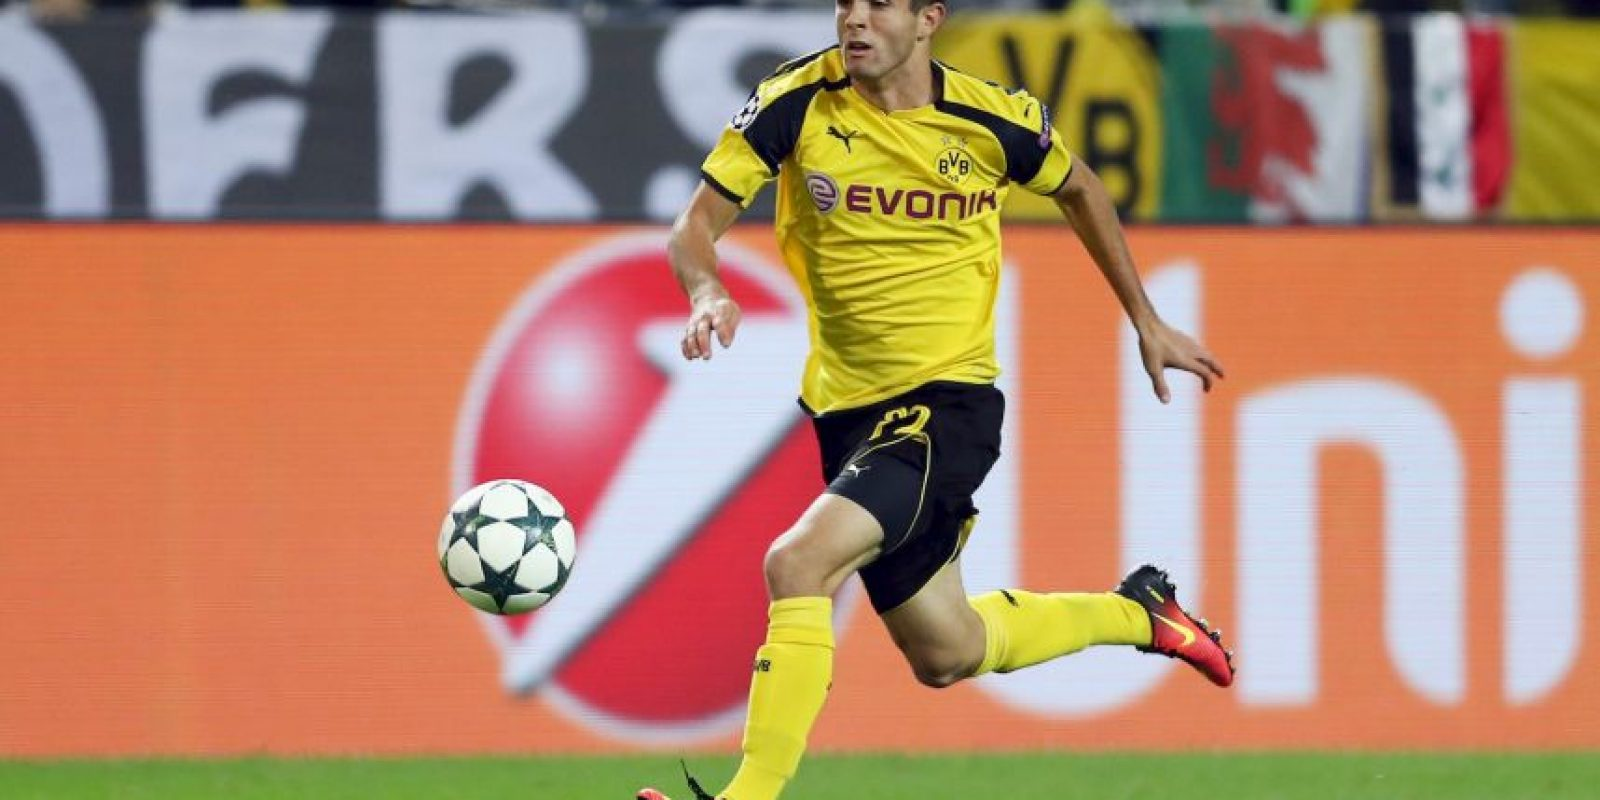 15.-Christian Pulisic – 18 años (Borussia Dortmund) Foto: Getty Images